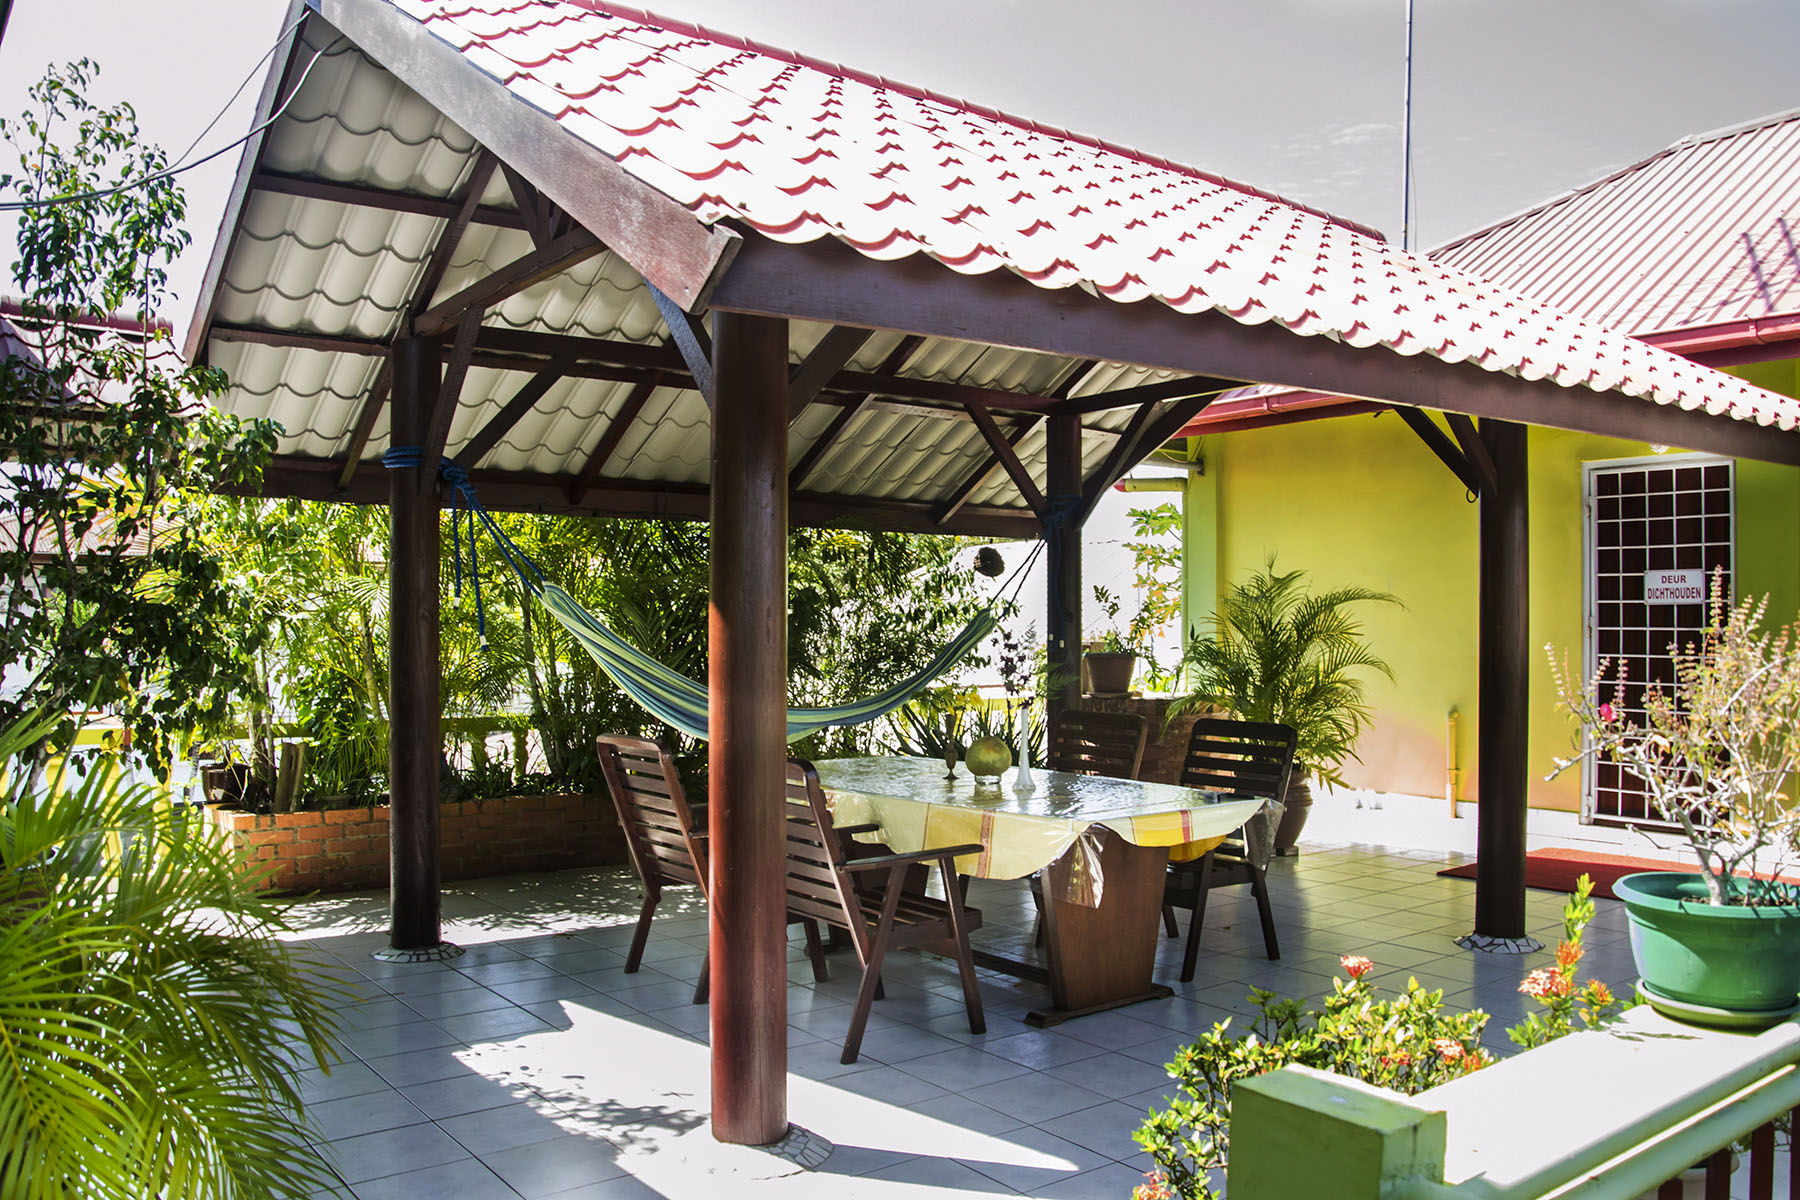 Banken Suriname Suriname Holiday Apartments Serving You To Happiness